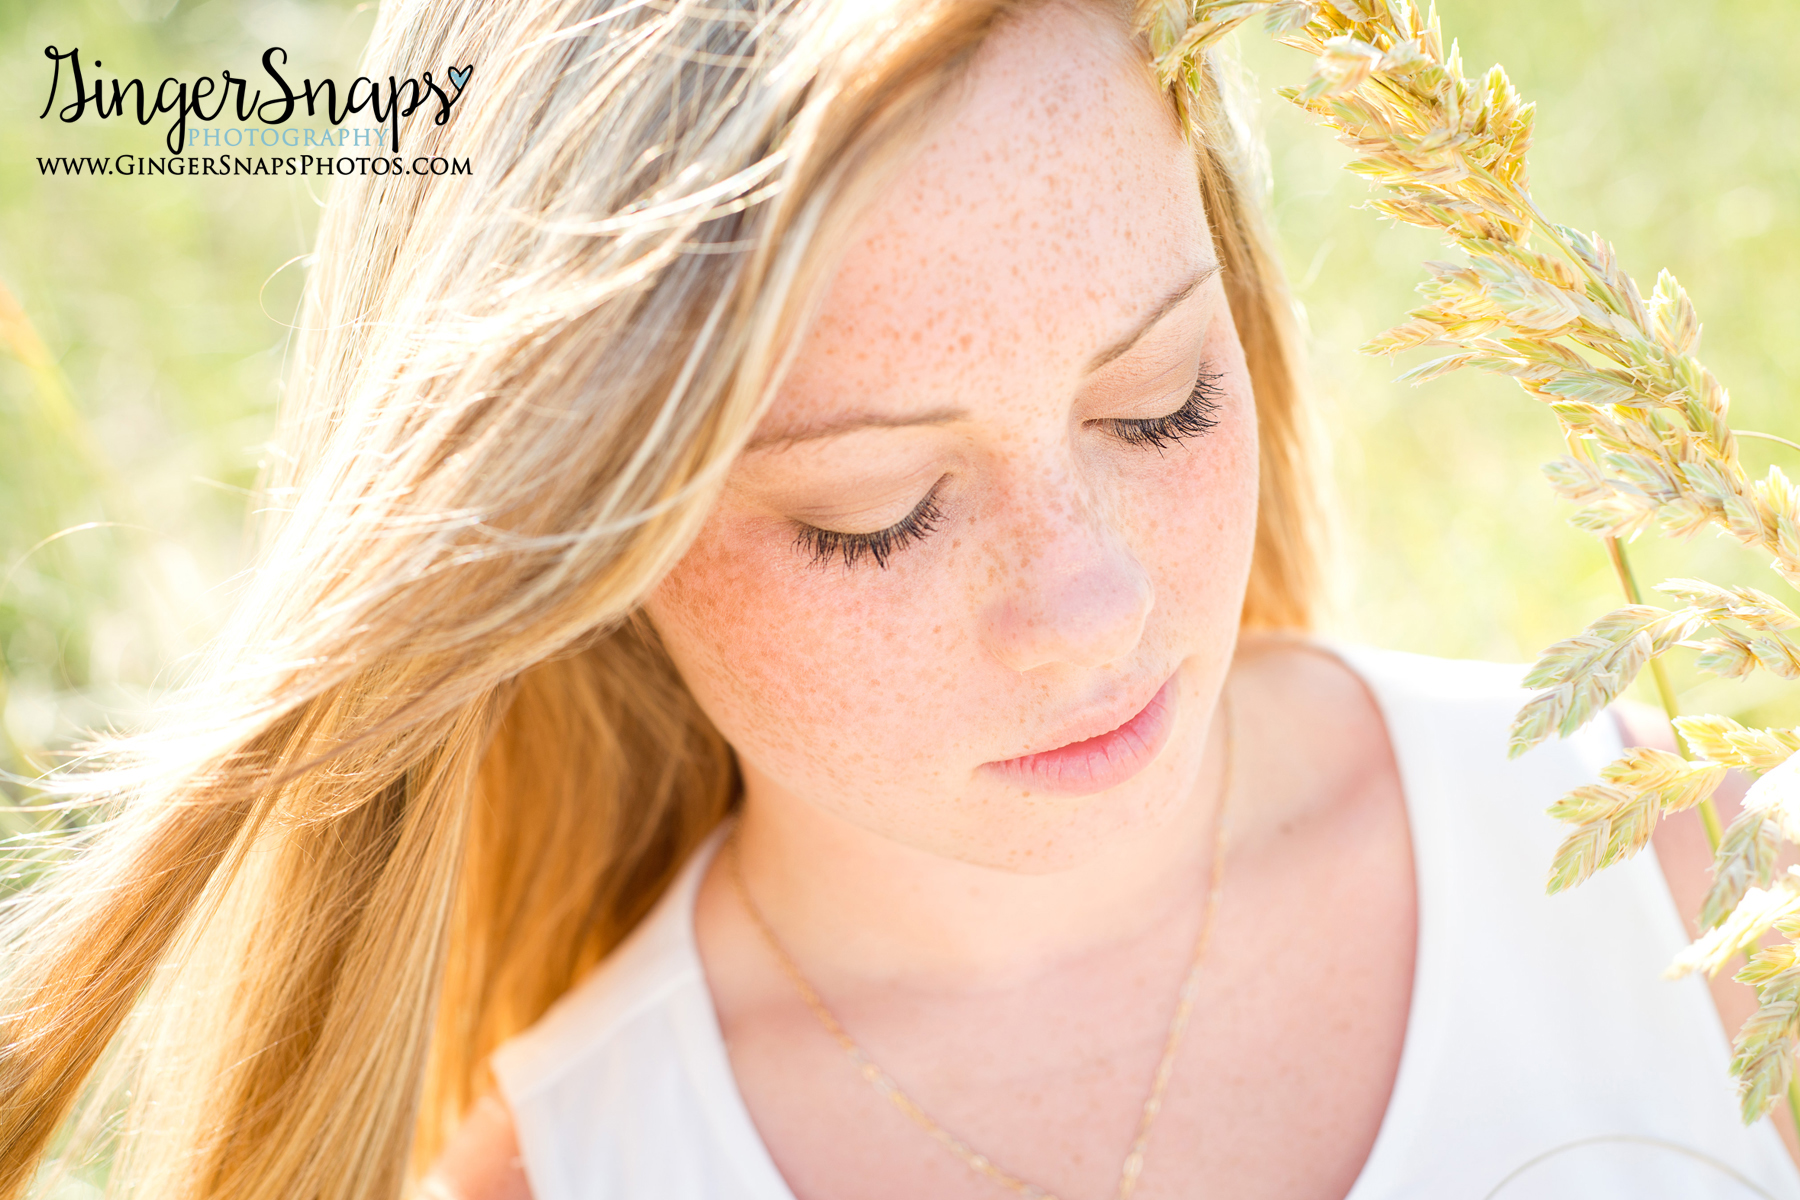 GingerSnaps Photography - 24.jpg